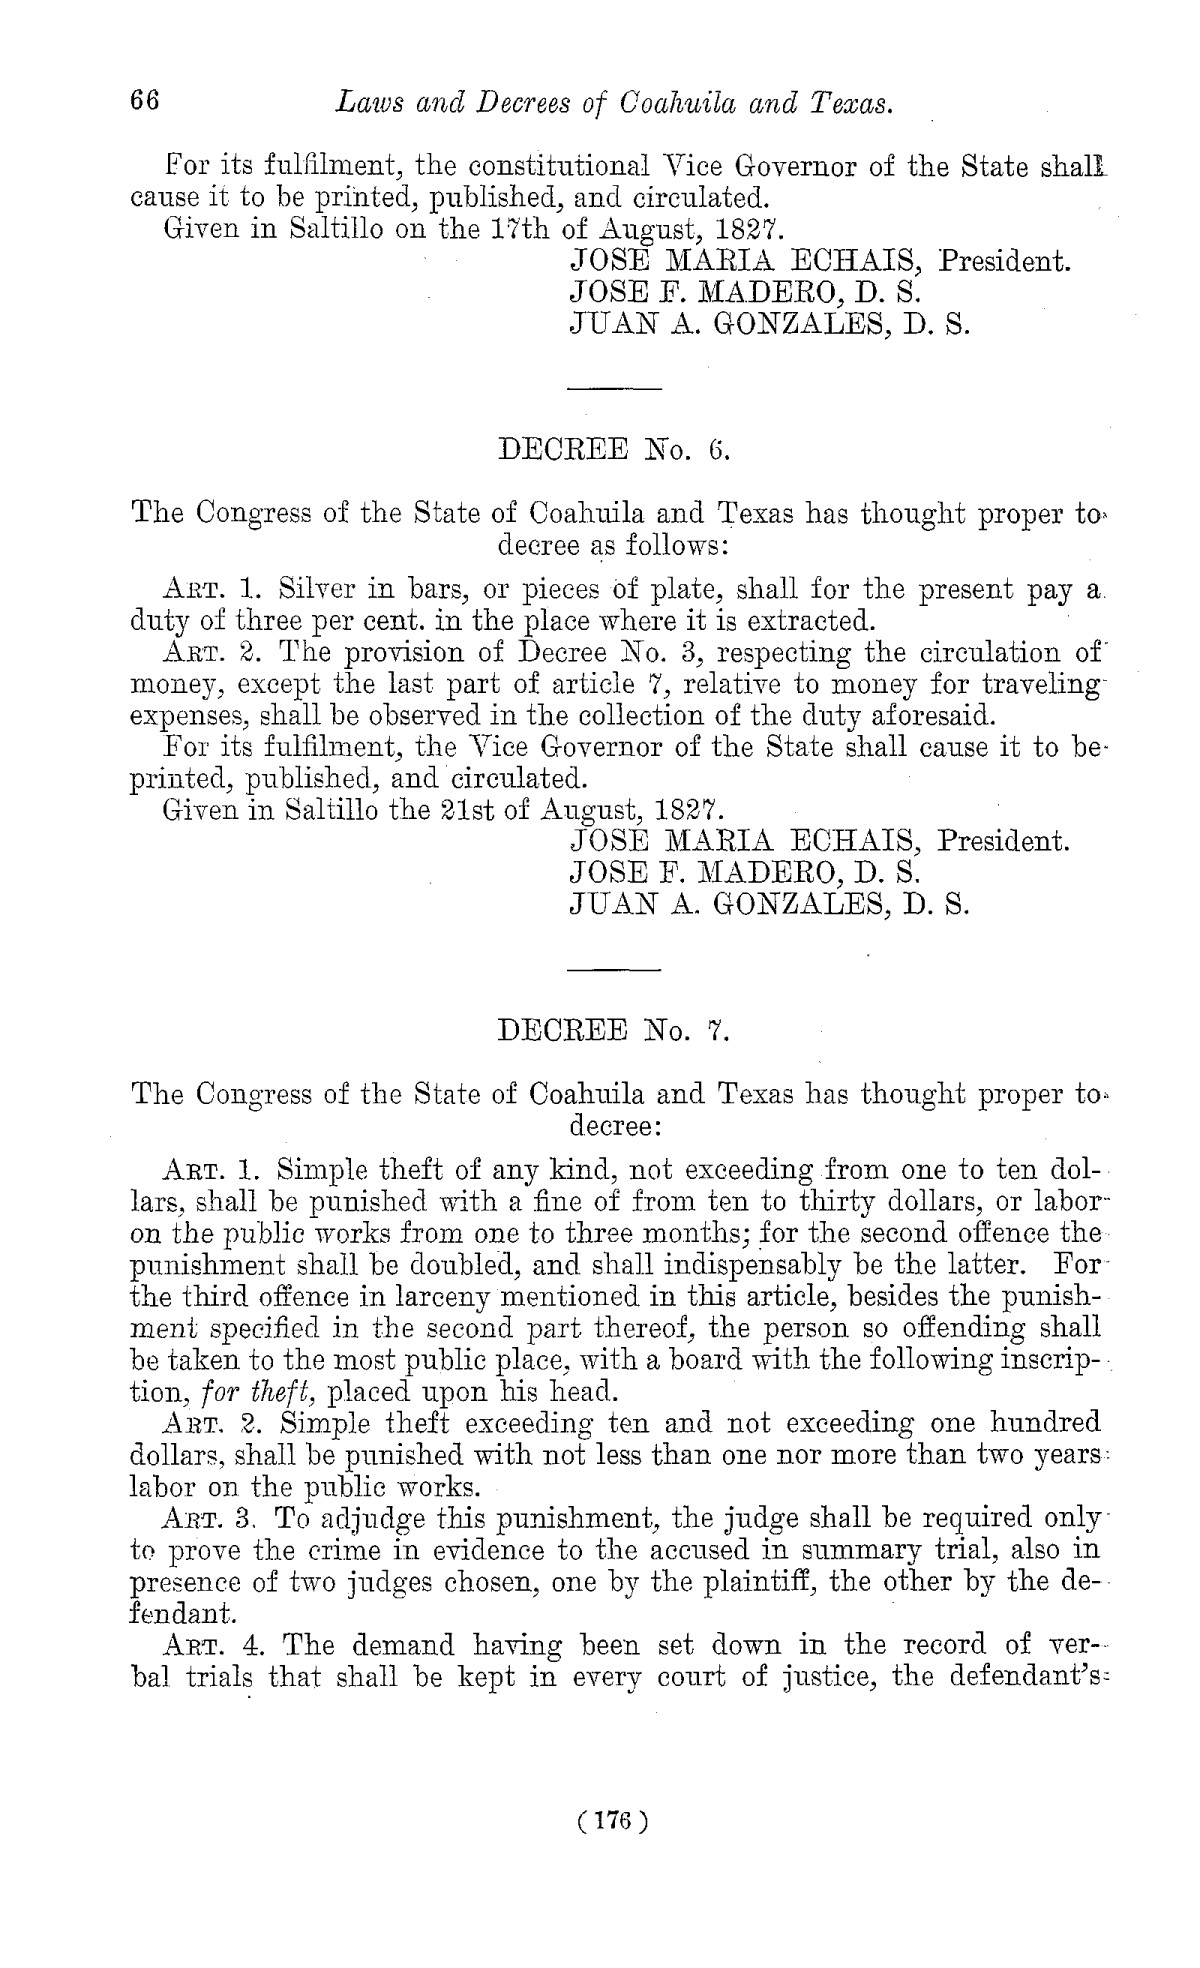 The Laws of Texas, 1822-1897 Volume 1                                                                                                      176